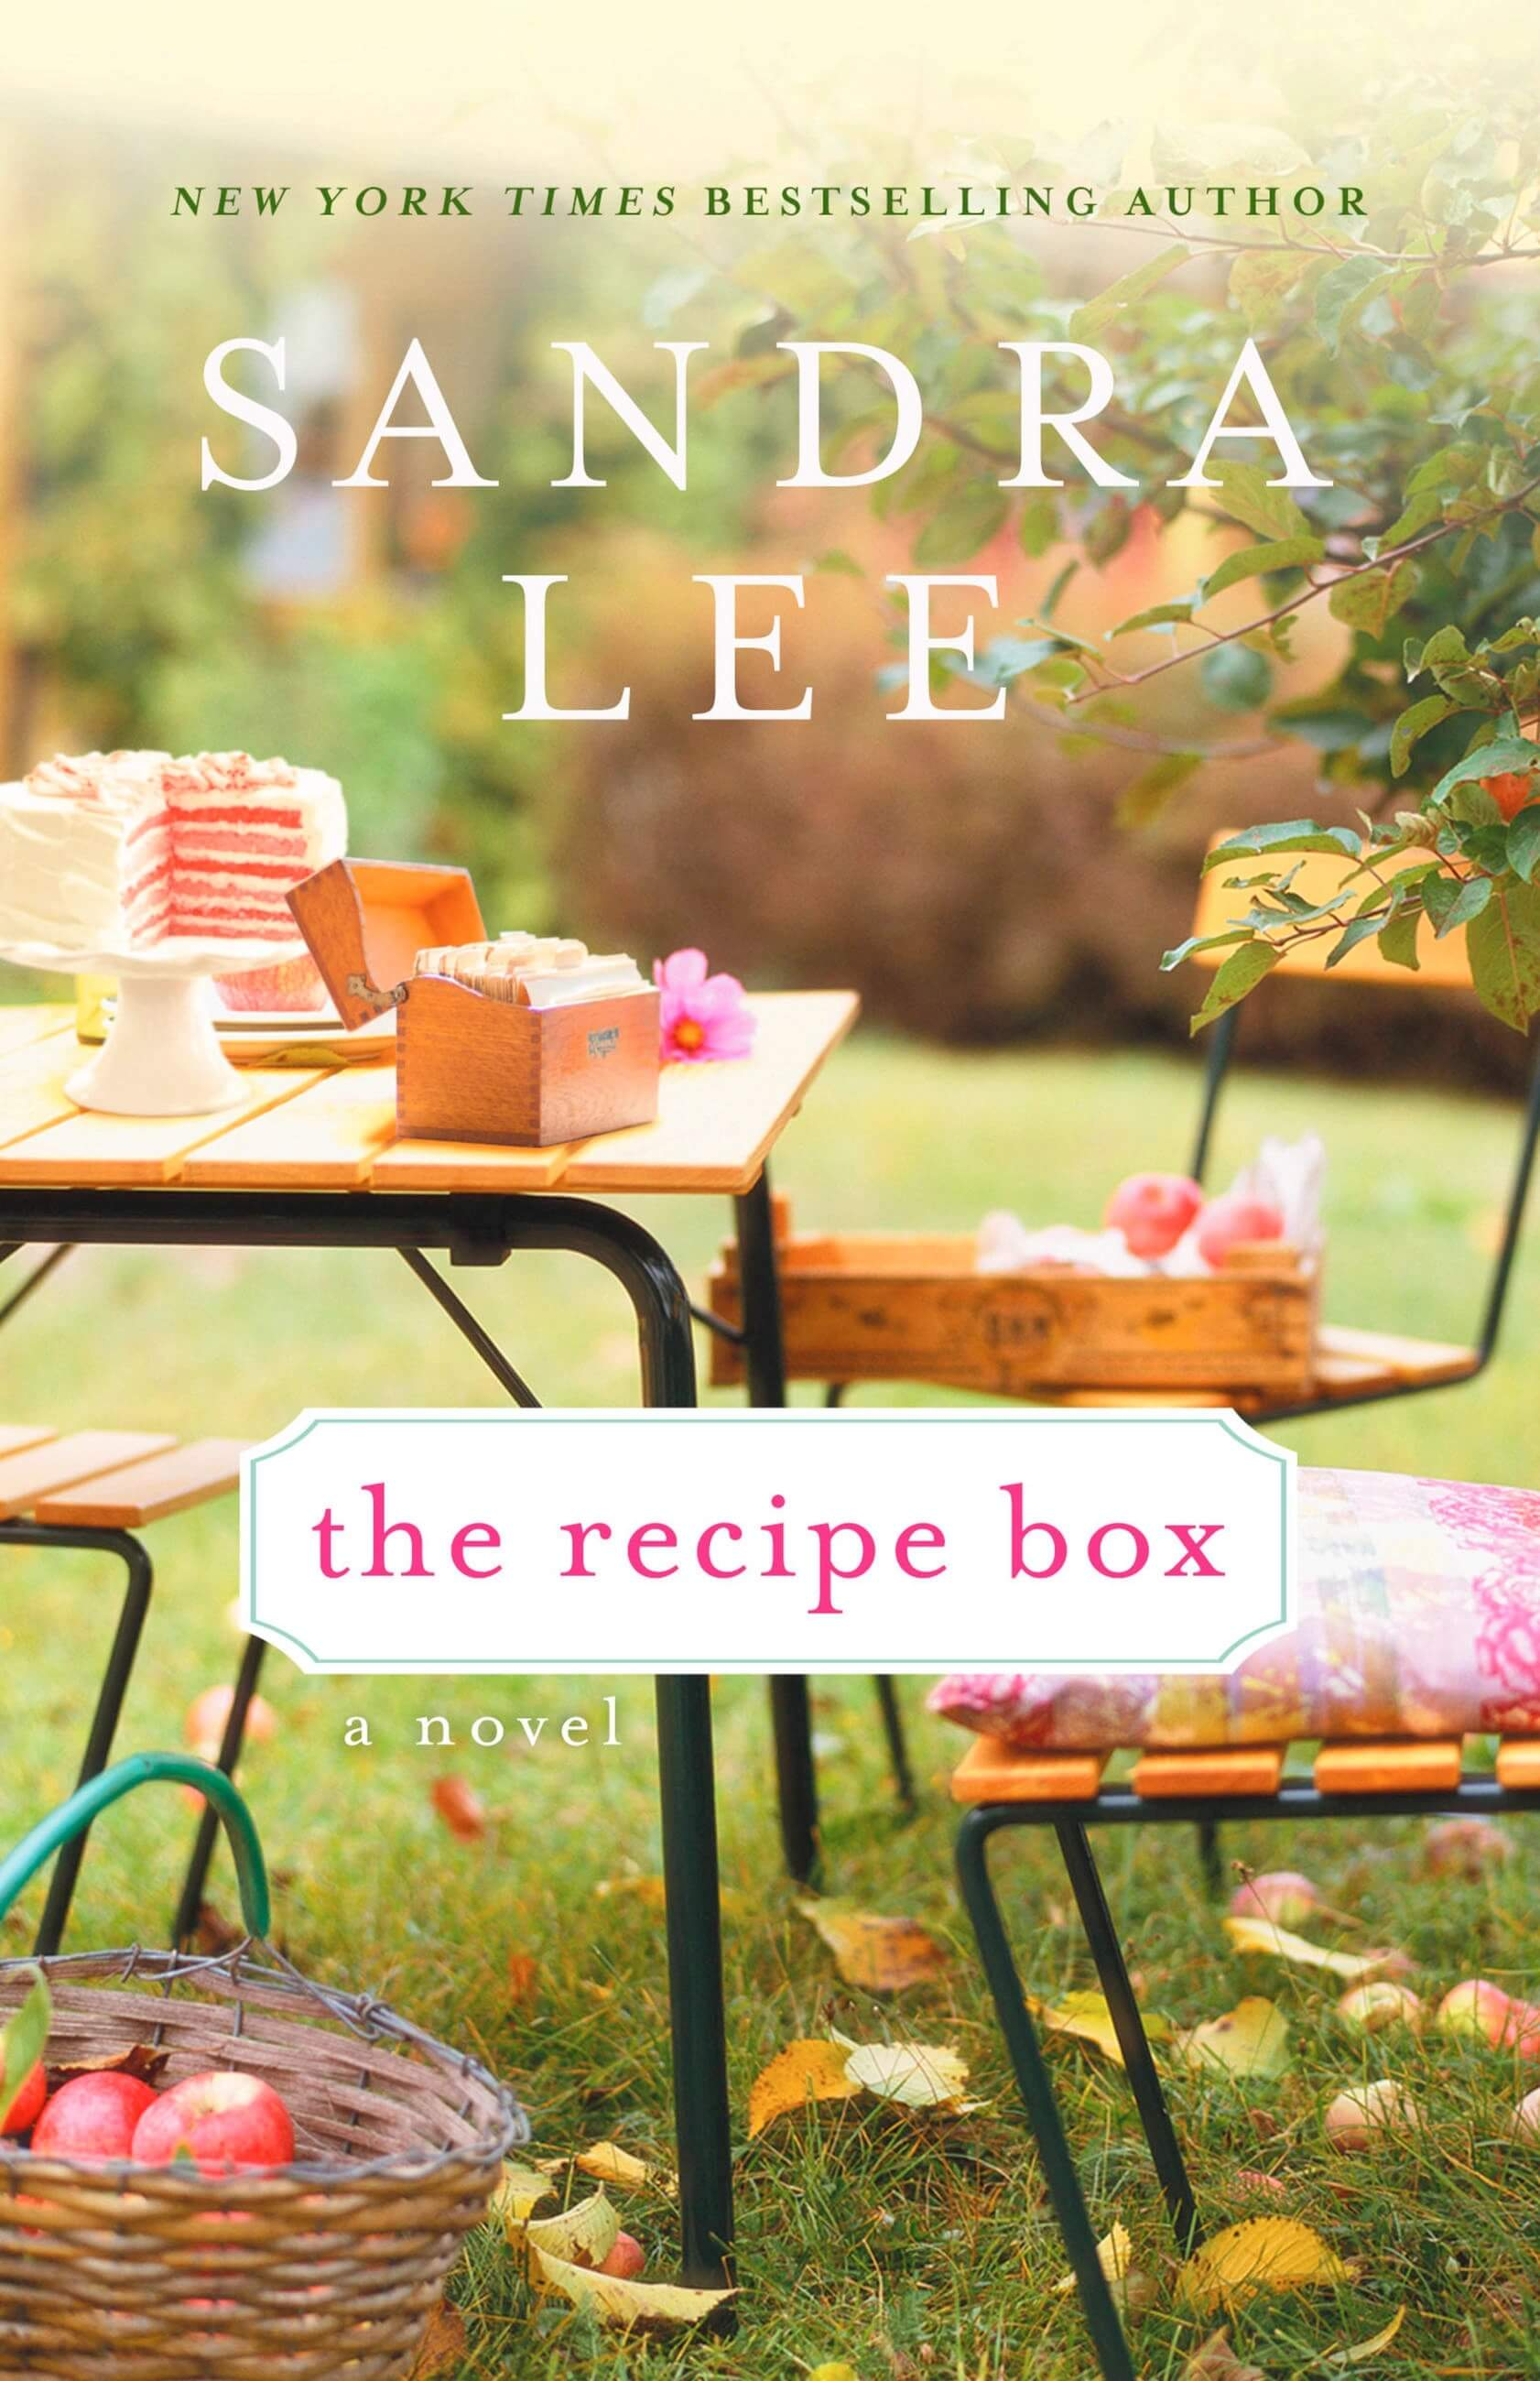 The Recipe Box Novel by Sandra Lee